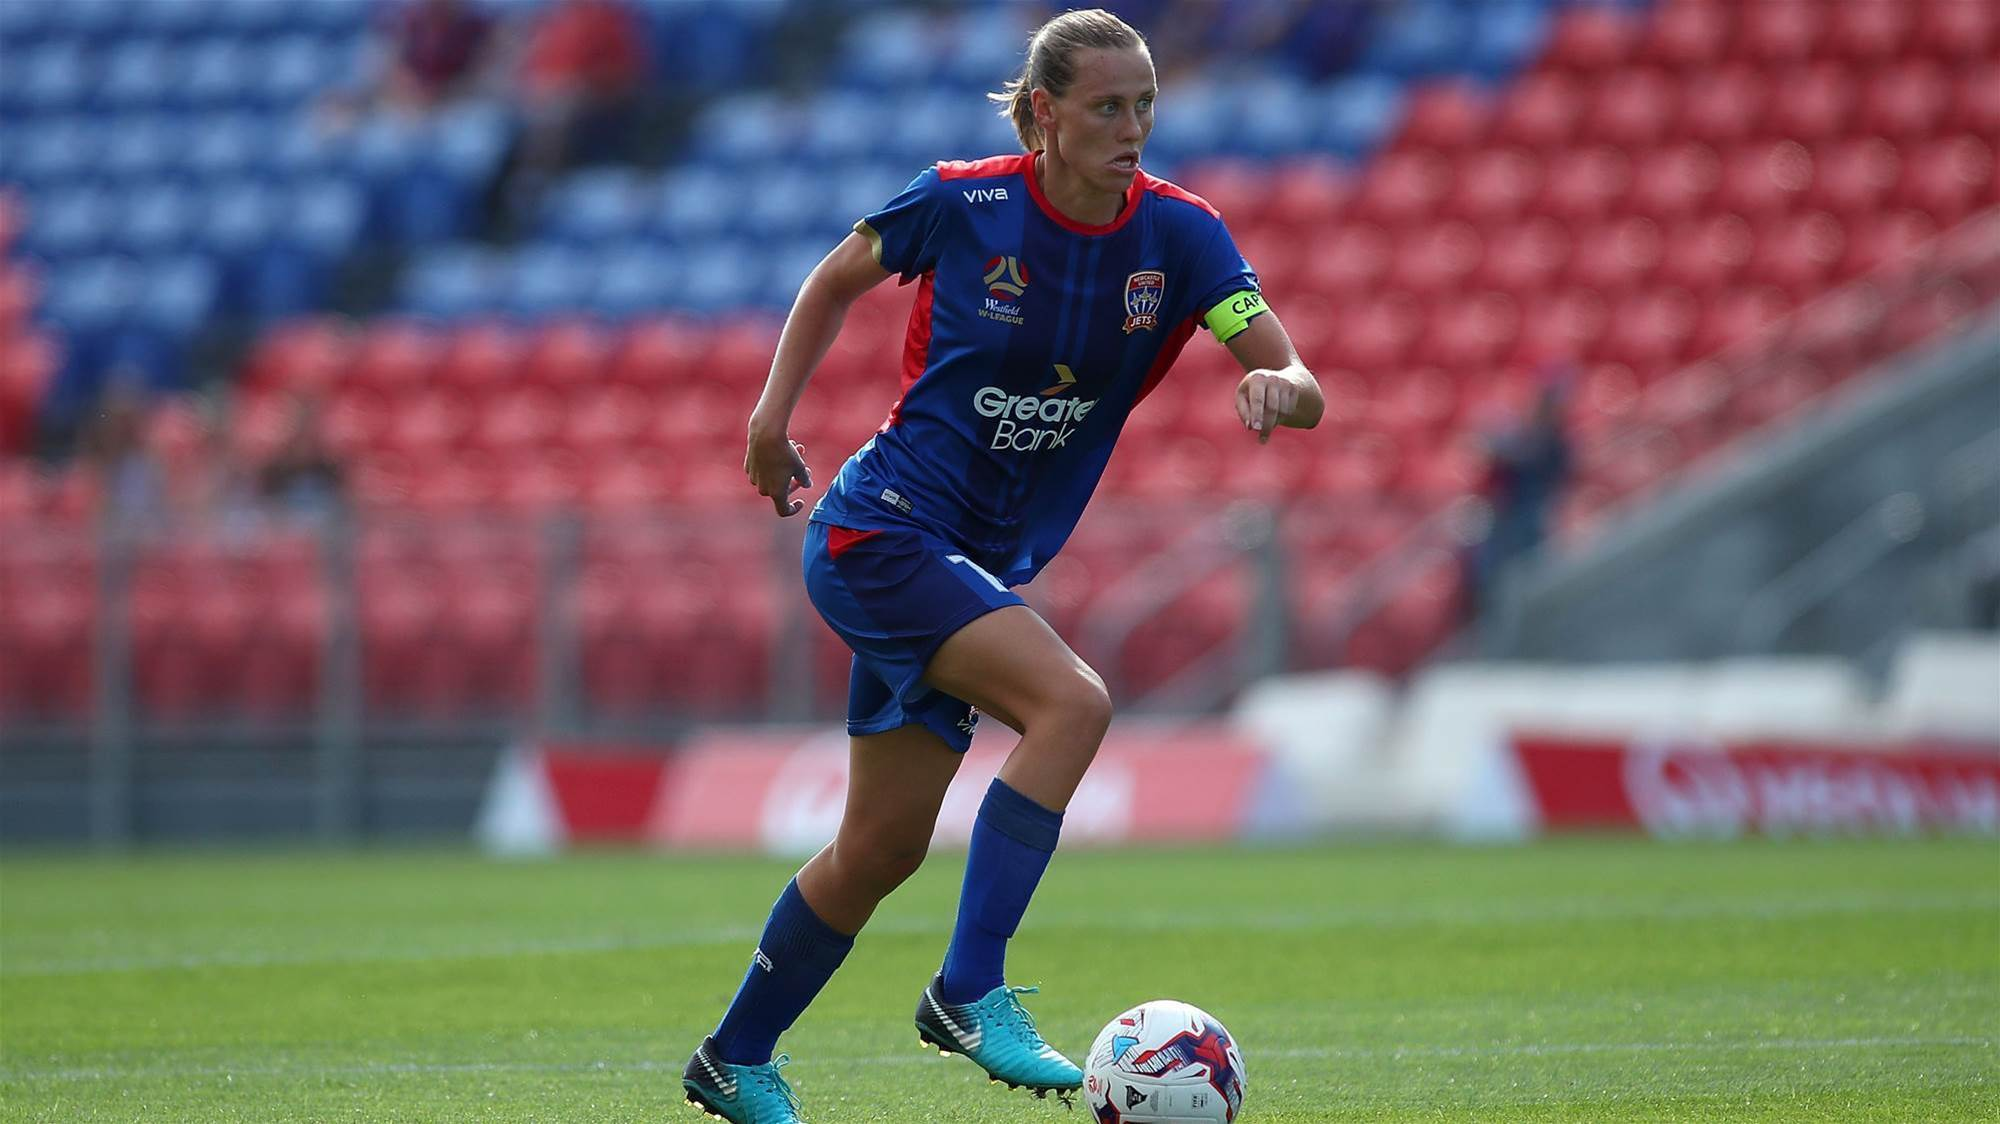 Oppositions Take On Forward >> Semi-final preview: Newcastle Jets - FTBL | The home of football in Australia - The Women's Game ...